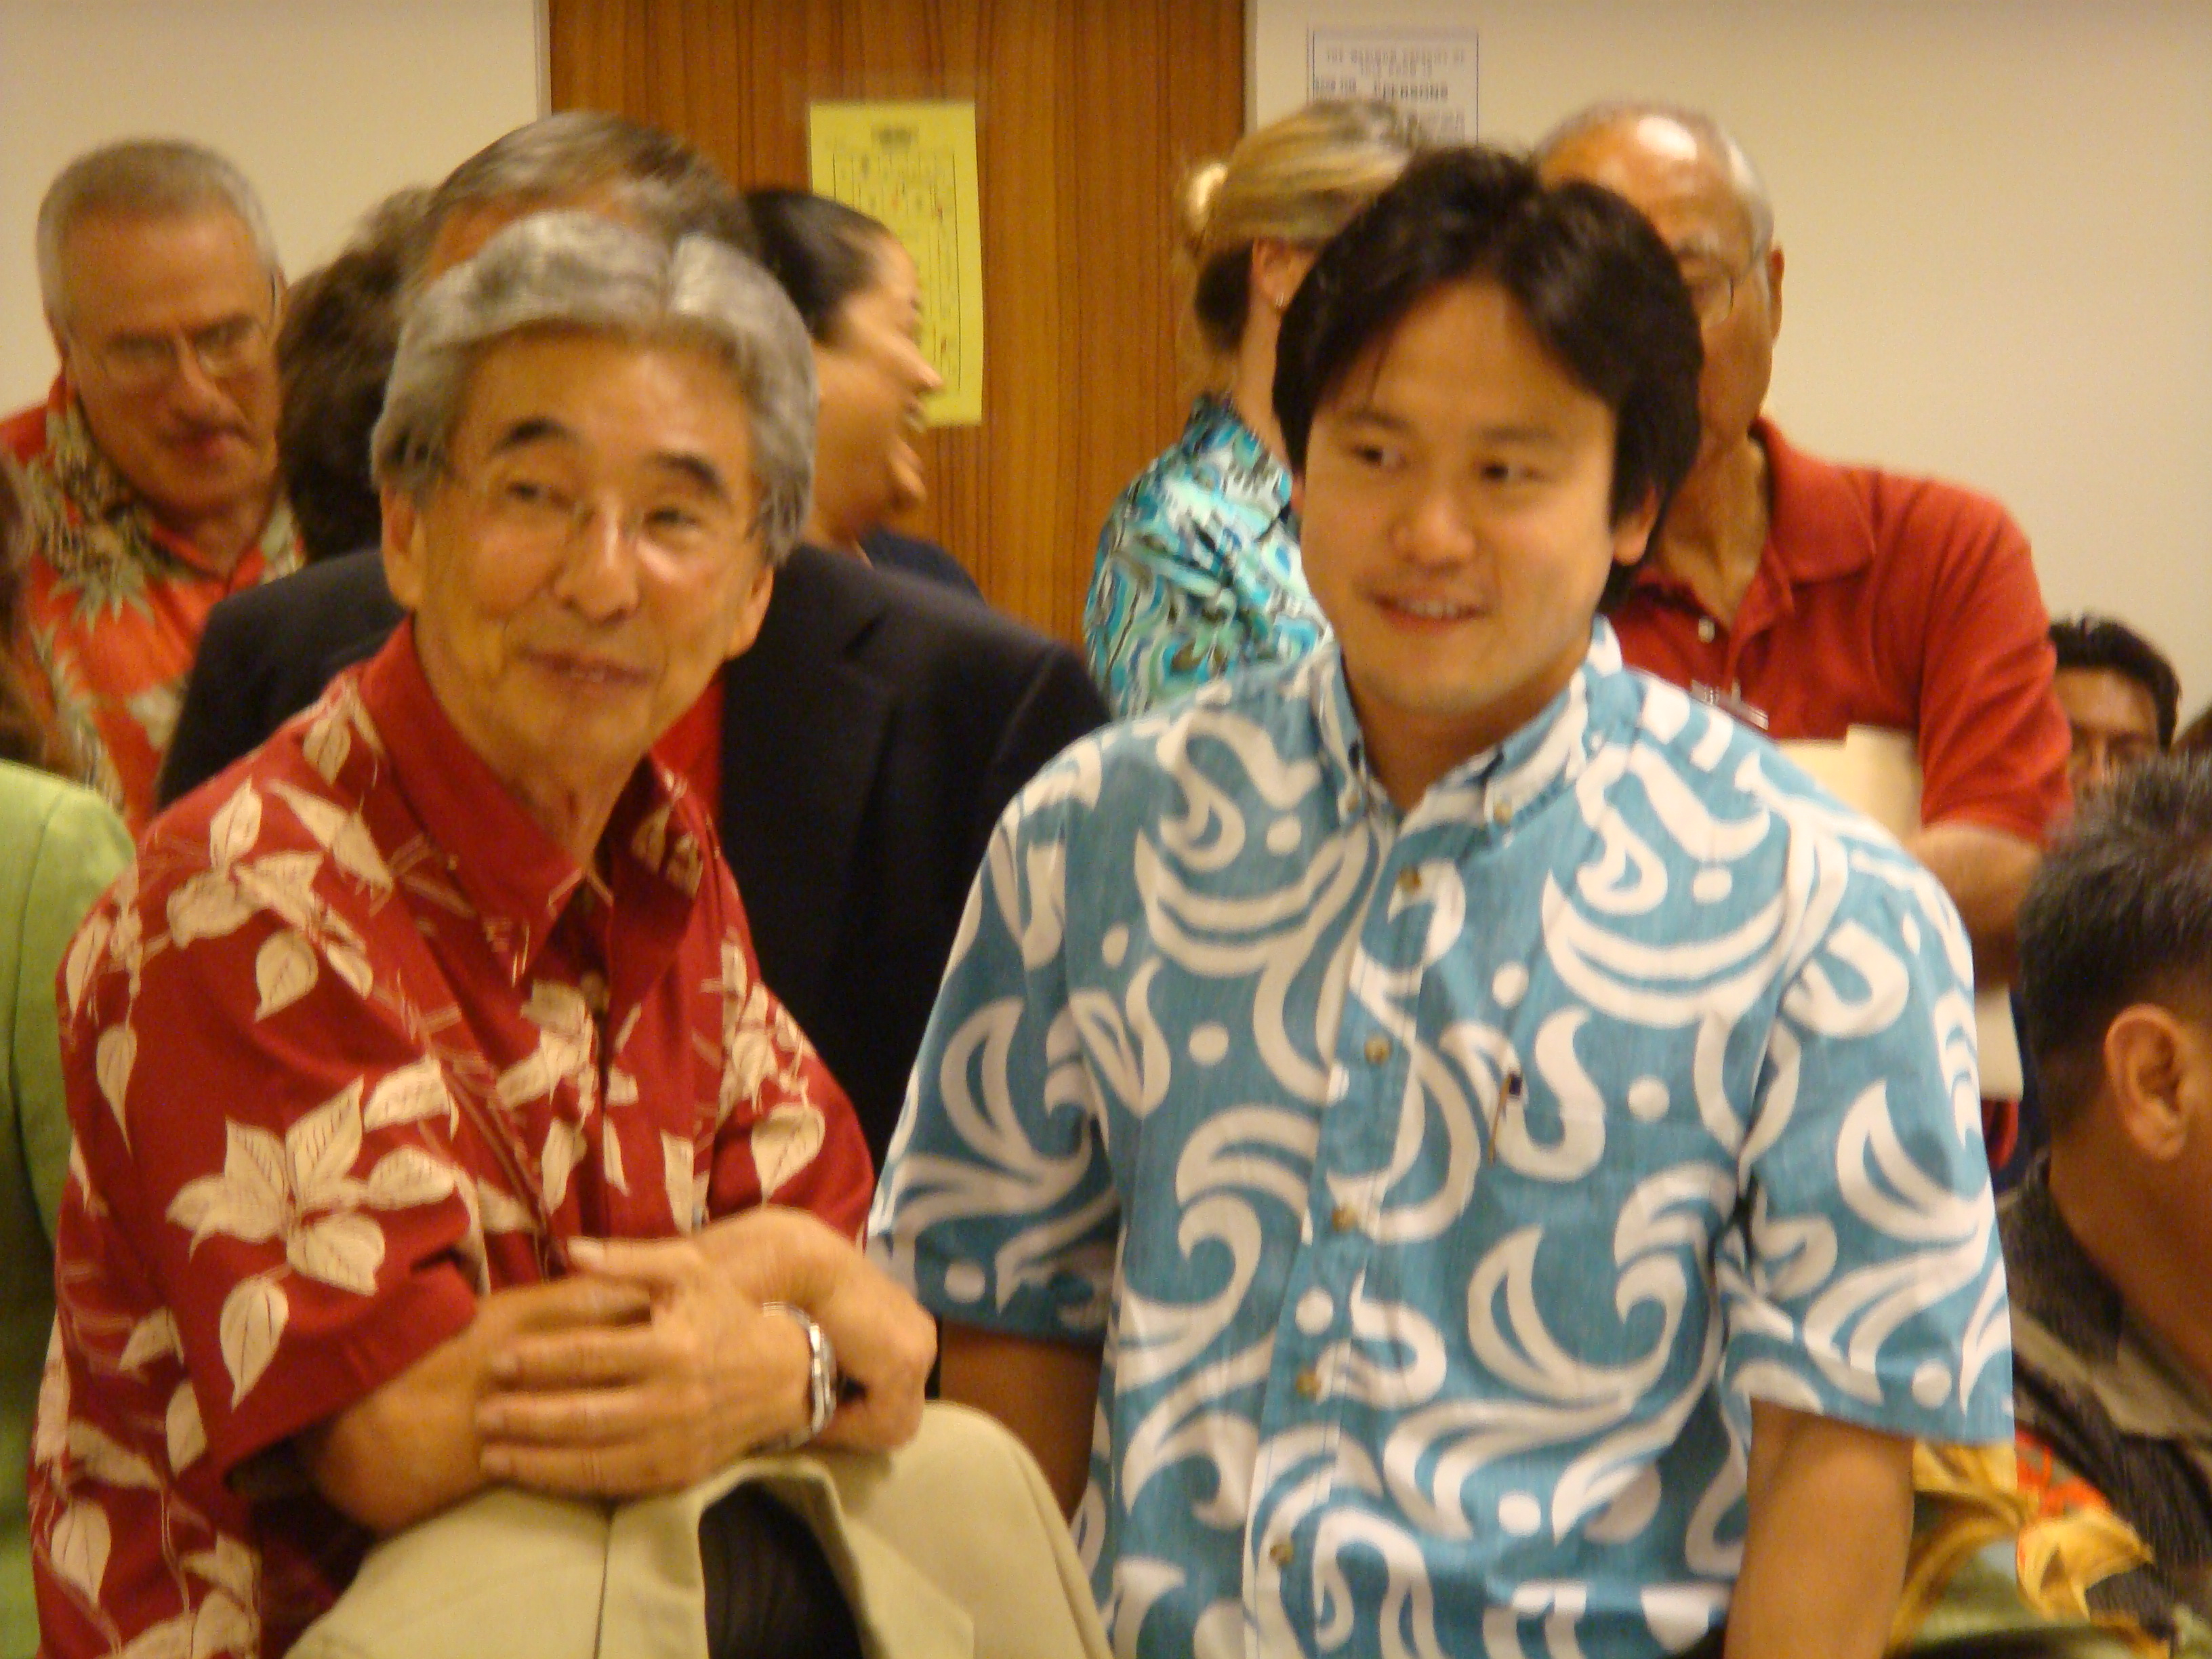 Rep. Clift Tsuji & Rep. Jon Riki Karamatsu at a House-Senate conference during the 2008 Legislative Session.